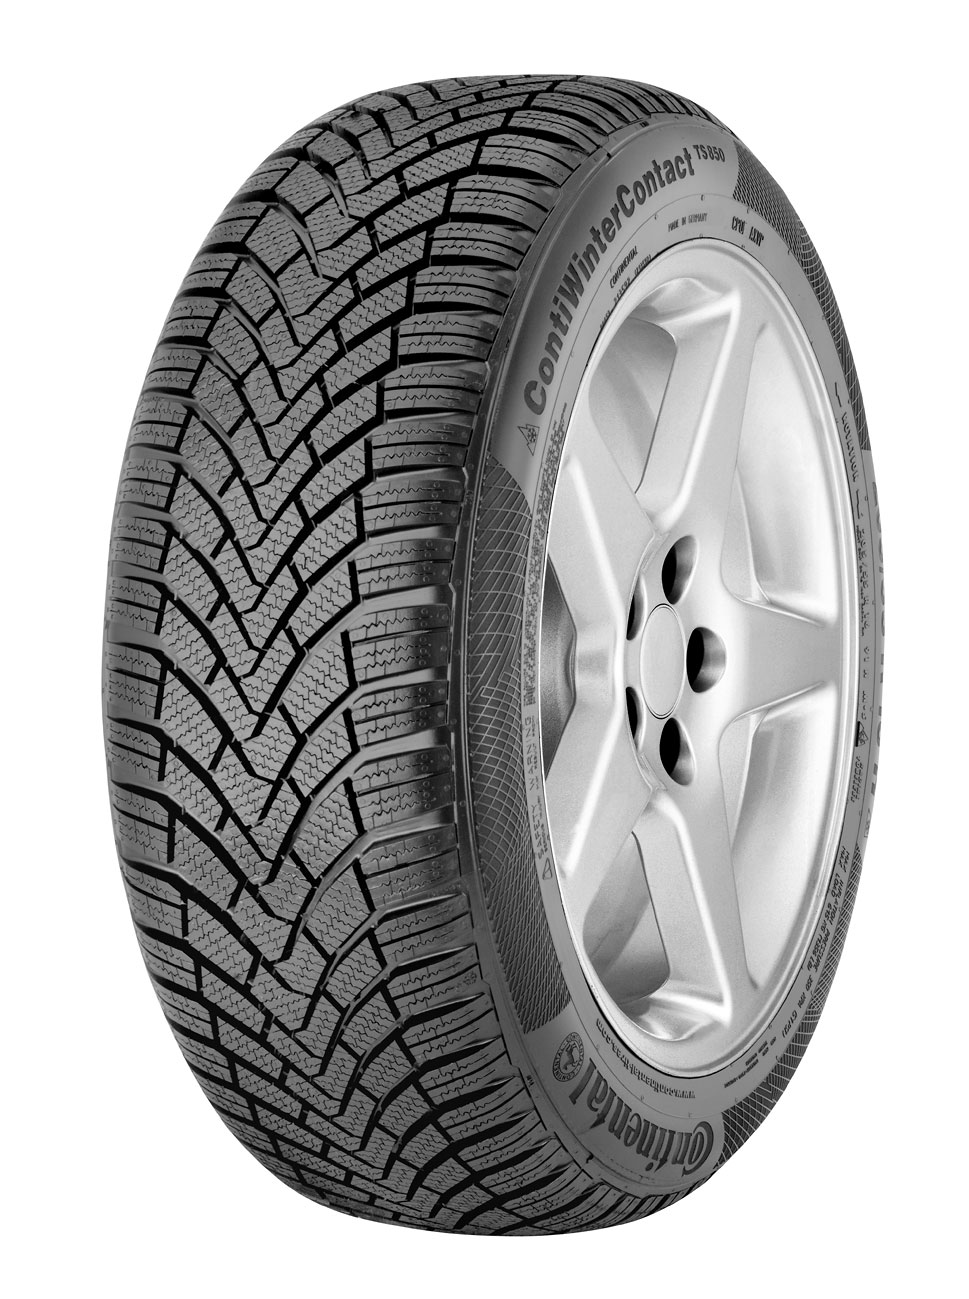 Anvelope Continental Winter Contact Ts850 225/55R16 99H Iarna imagine